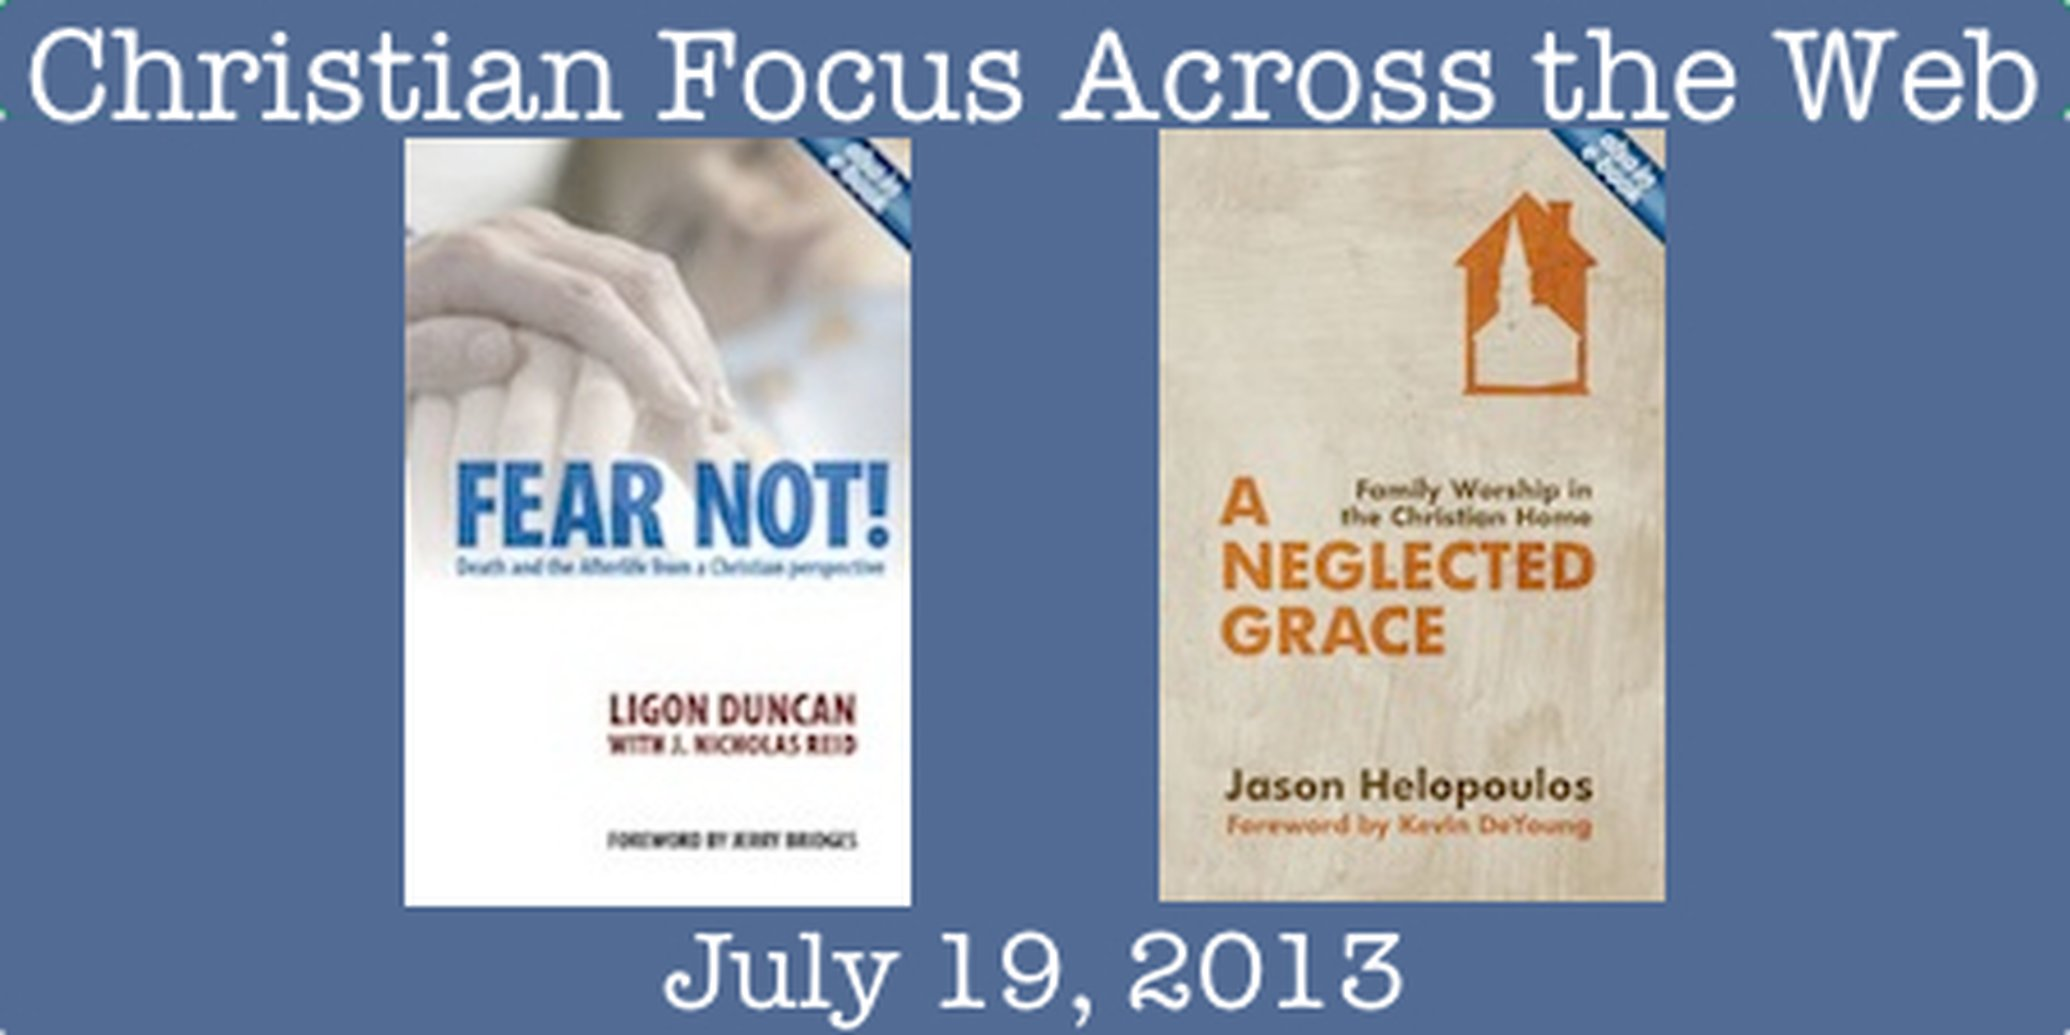 Christian Focus Across the Web - July 19, 2013